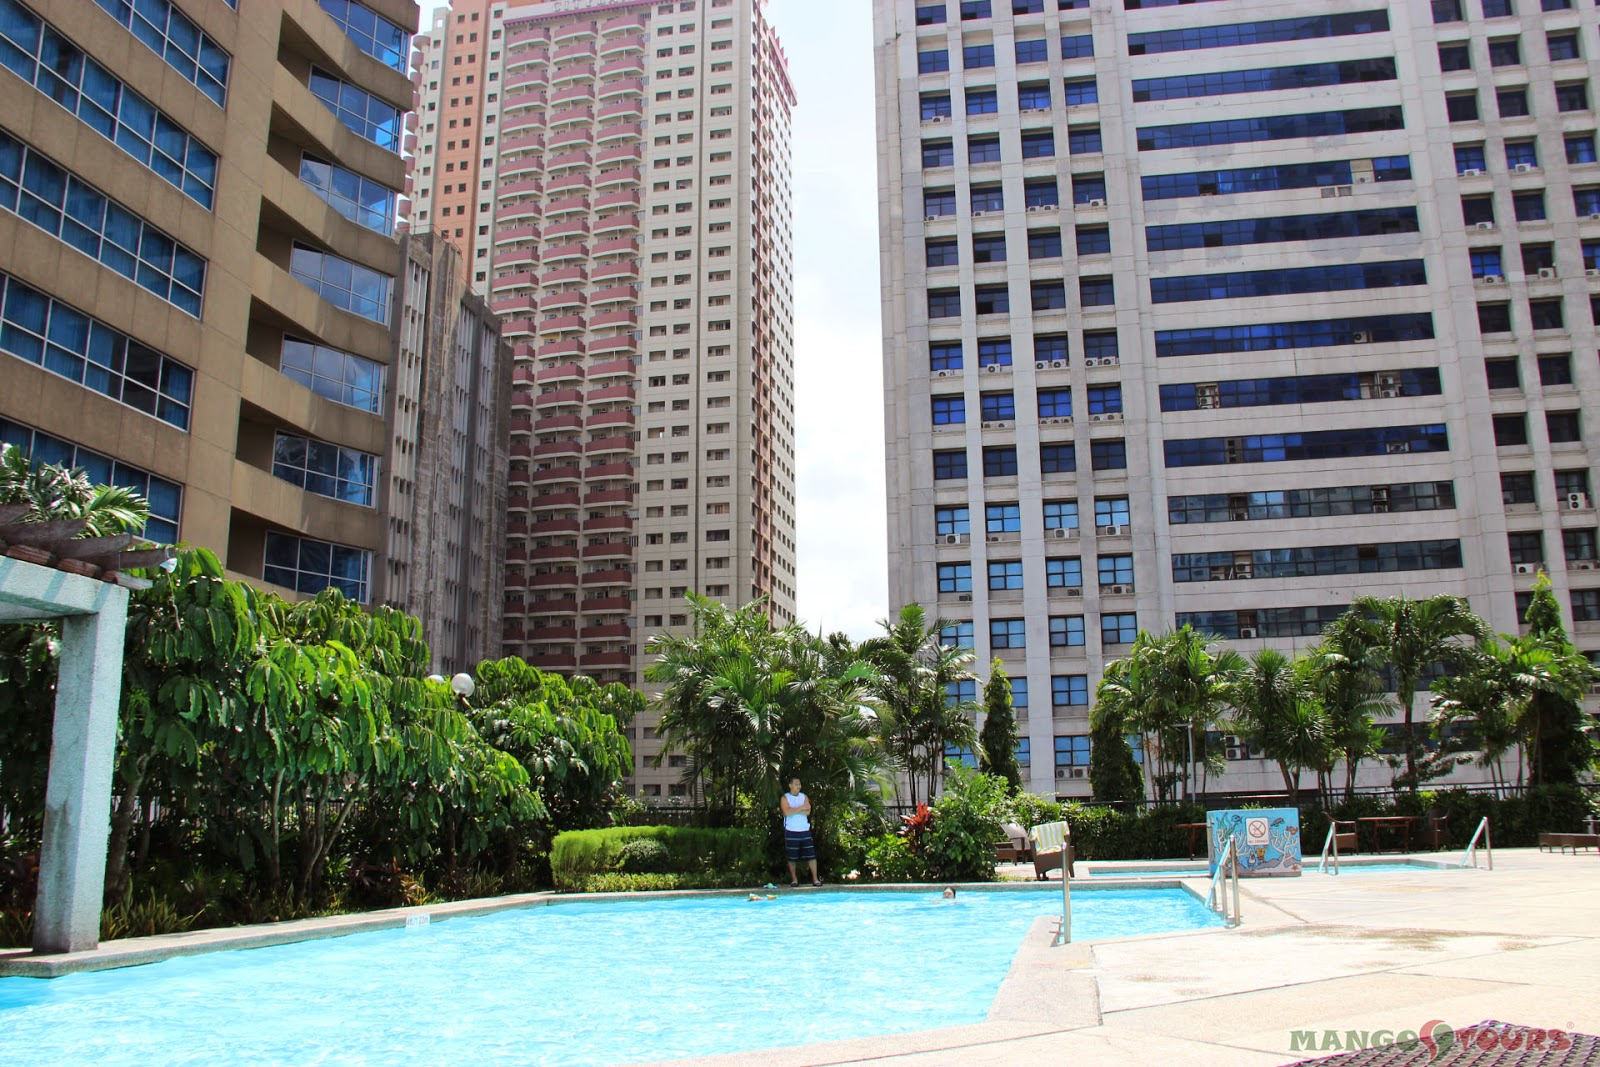 Mango Tours Crowne Plaza Manila Galleria Hotel Philippines outdoor swimming pool